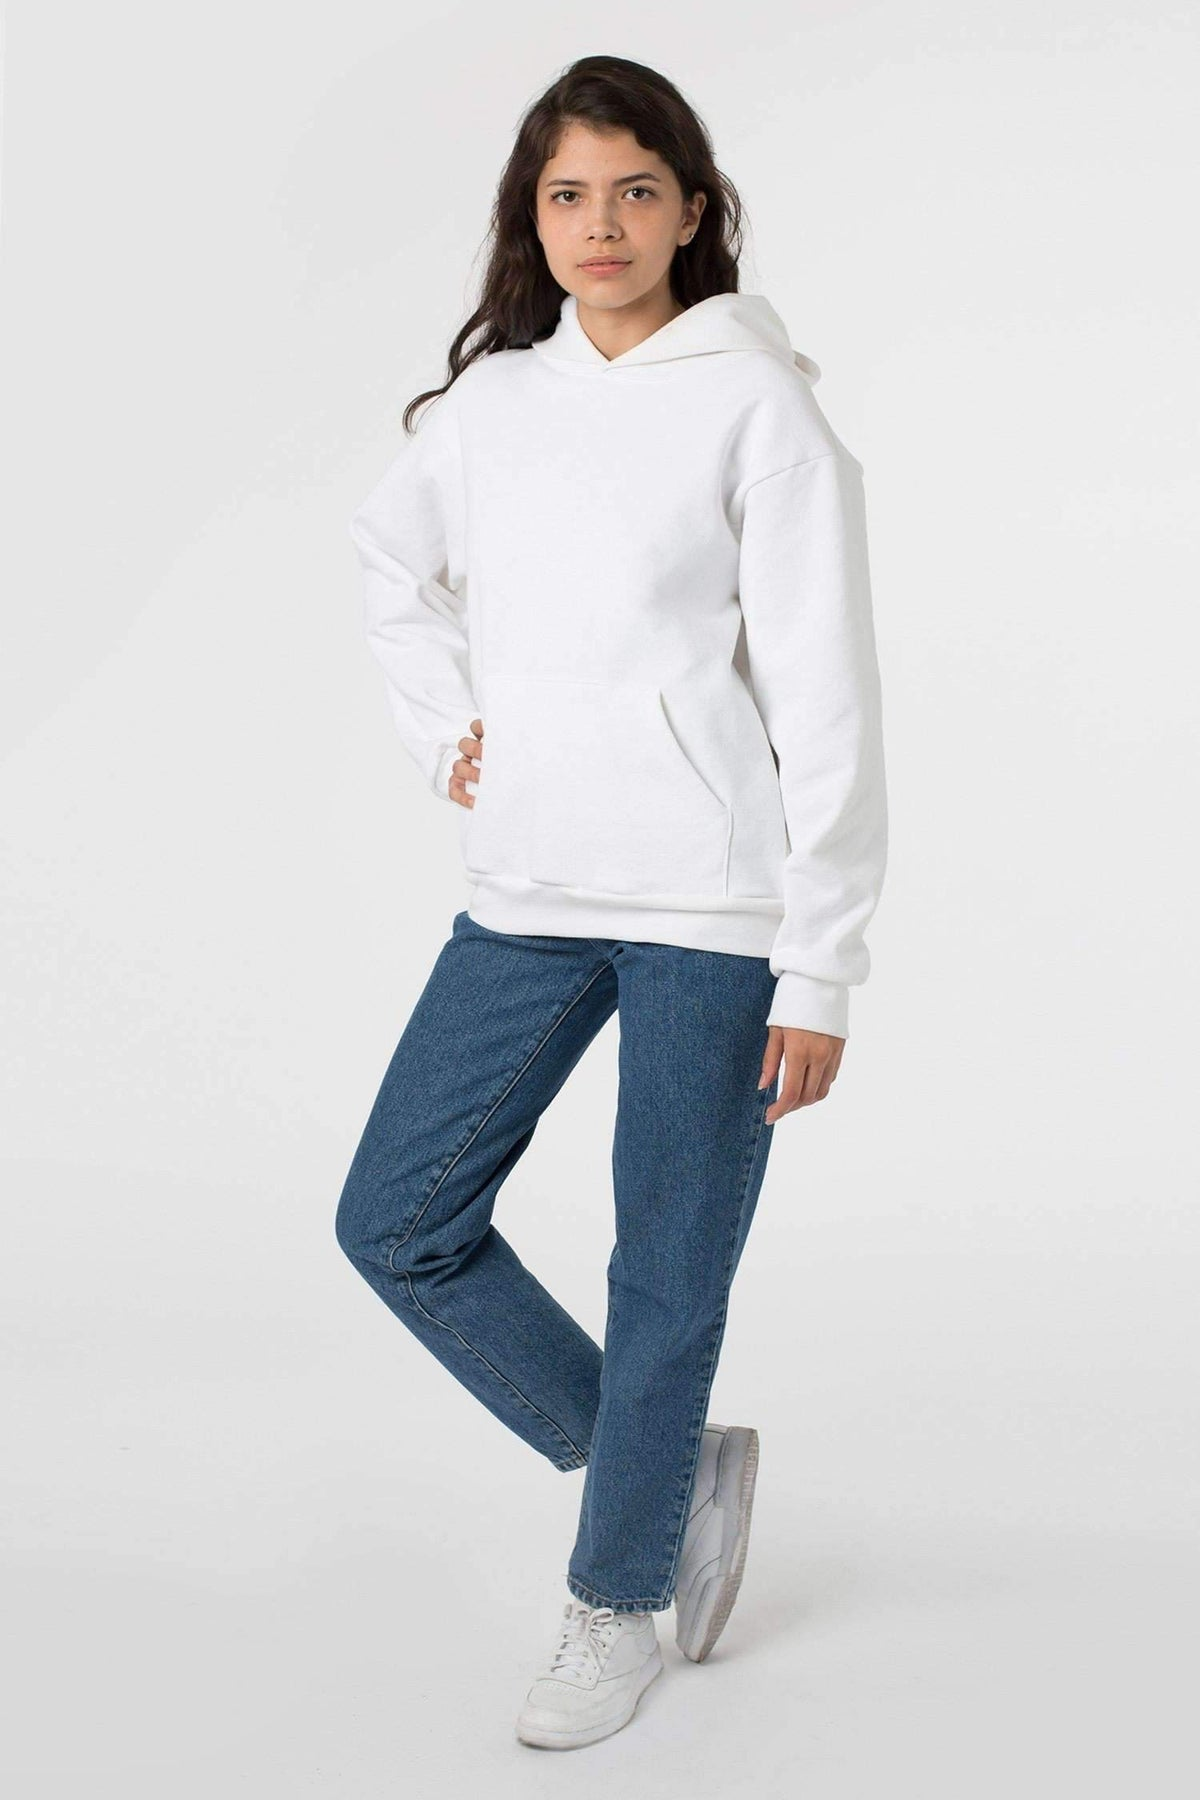 HF09 Mix - 14oz. Heavy Fleece Hooded Pullover Sweatshirt Sweatshirt Los Angeles Apparel White XS